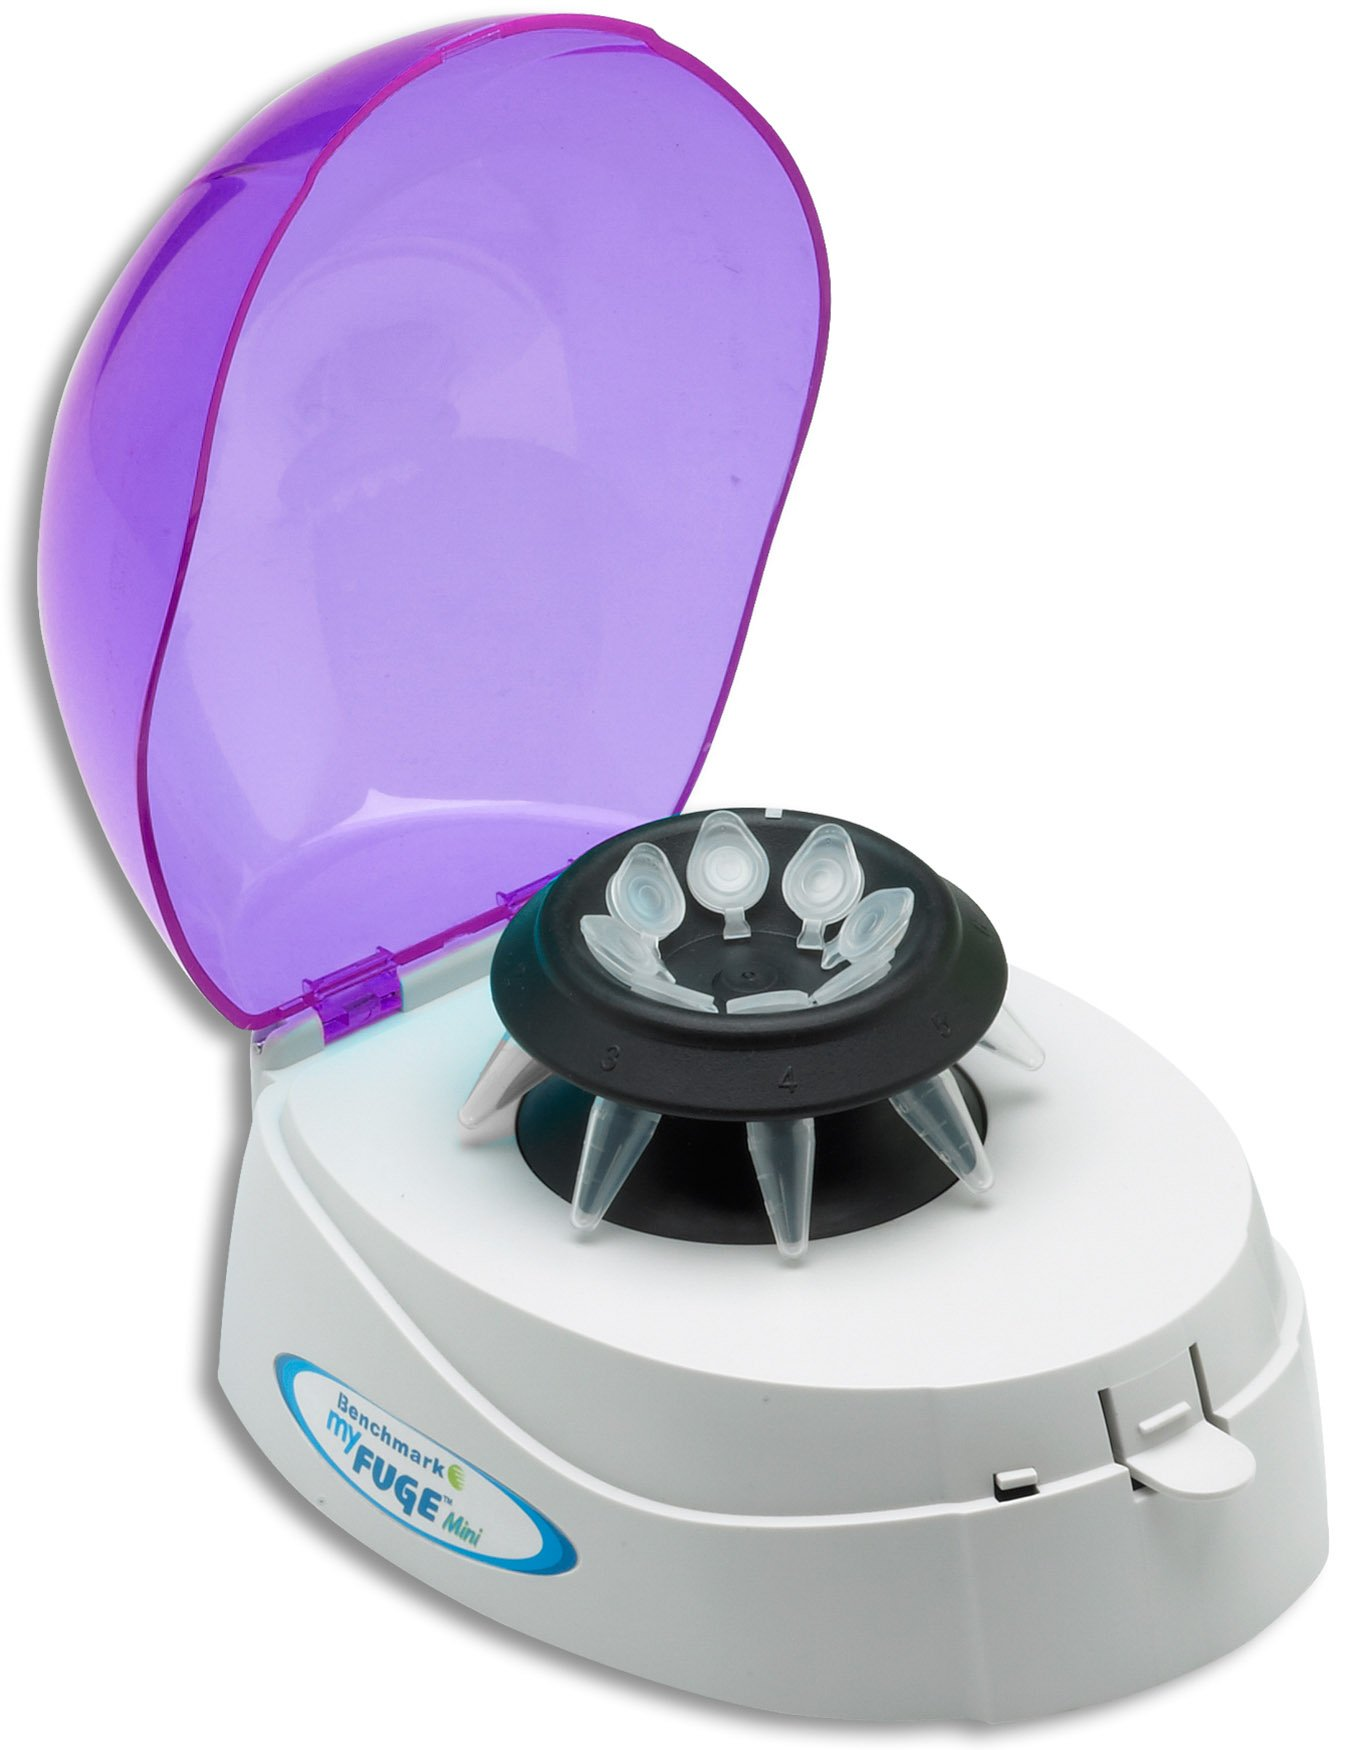 MyFuge Mini MicroCentrifuge With Two Rotors For 1.5ml-2.0ml Tubes & 0.2ml PCR Tubes - Purple Lid